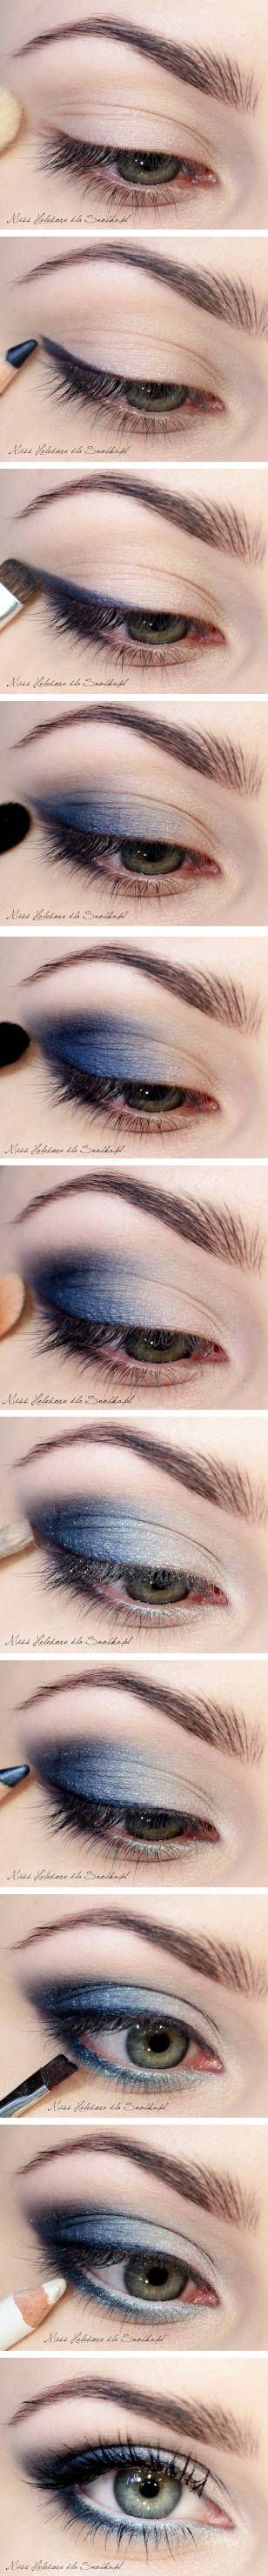 blue #eyeshadow #eyemakeuptips #makeup #tips #tricks #beauty #DIY #doityourself #tutorial #stepbystep #howto #practical #guide